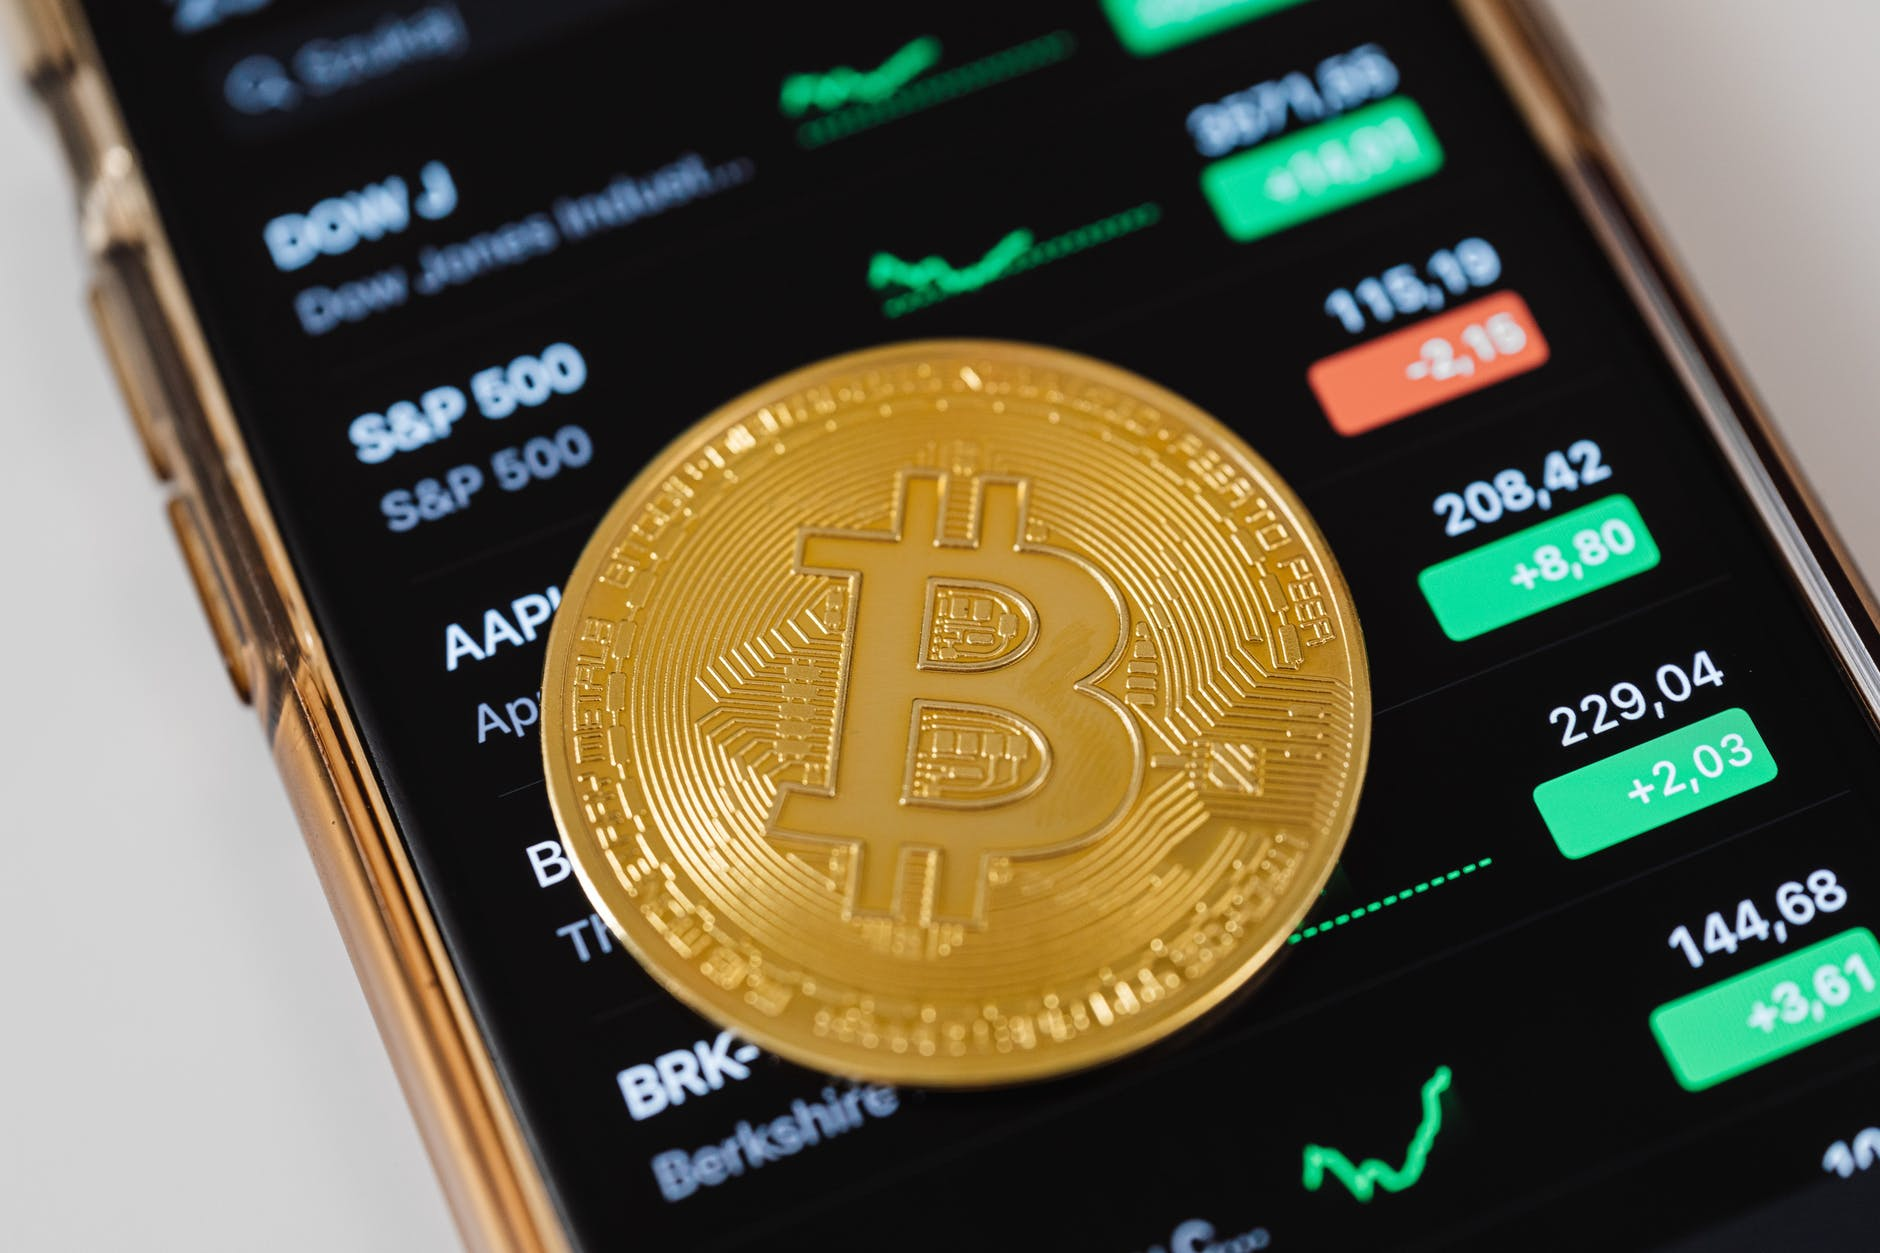 how to make profit on cryptocurrencies: phone screen with stocks and Bitcoin